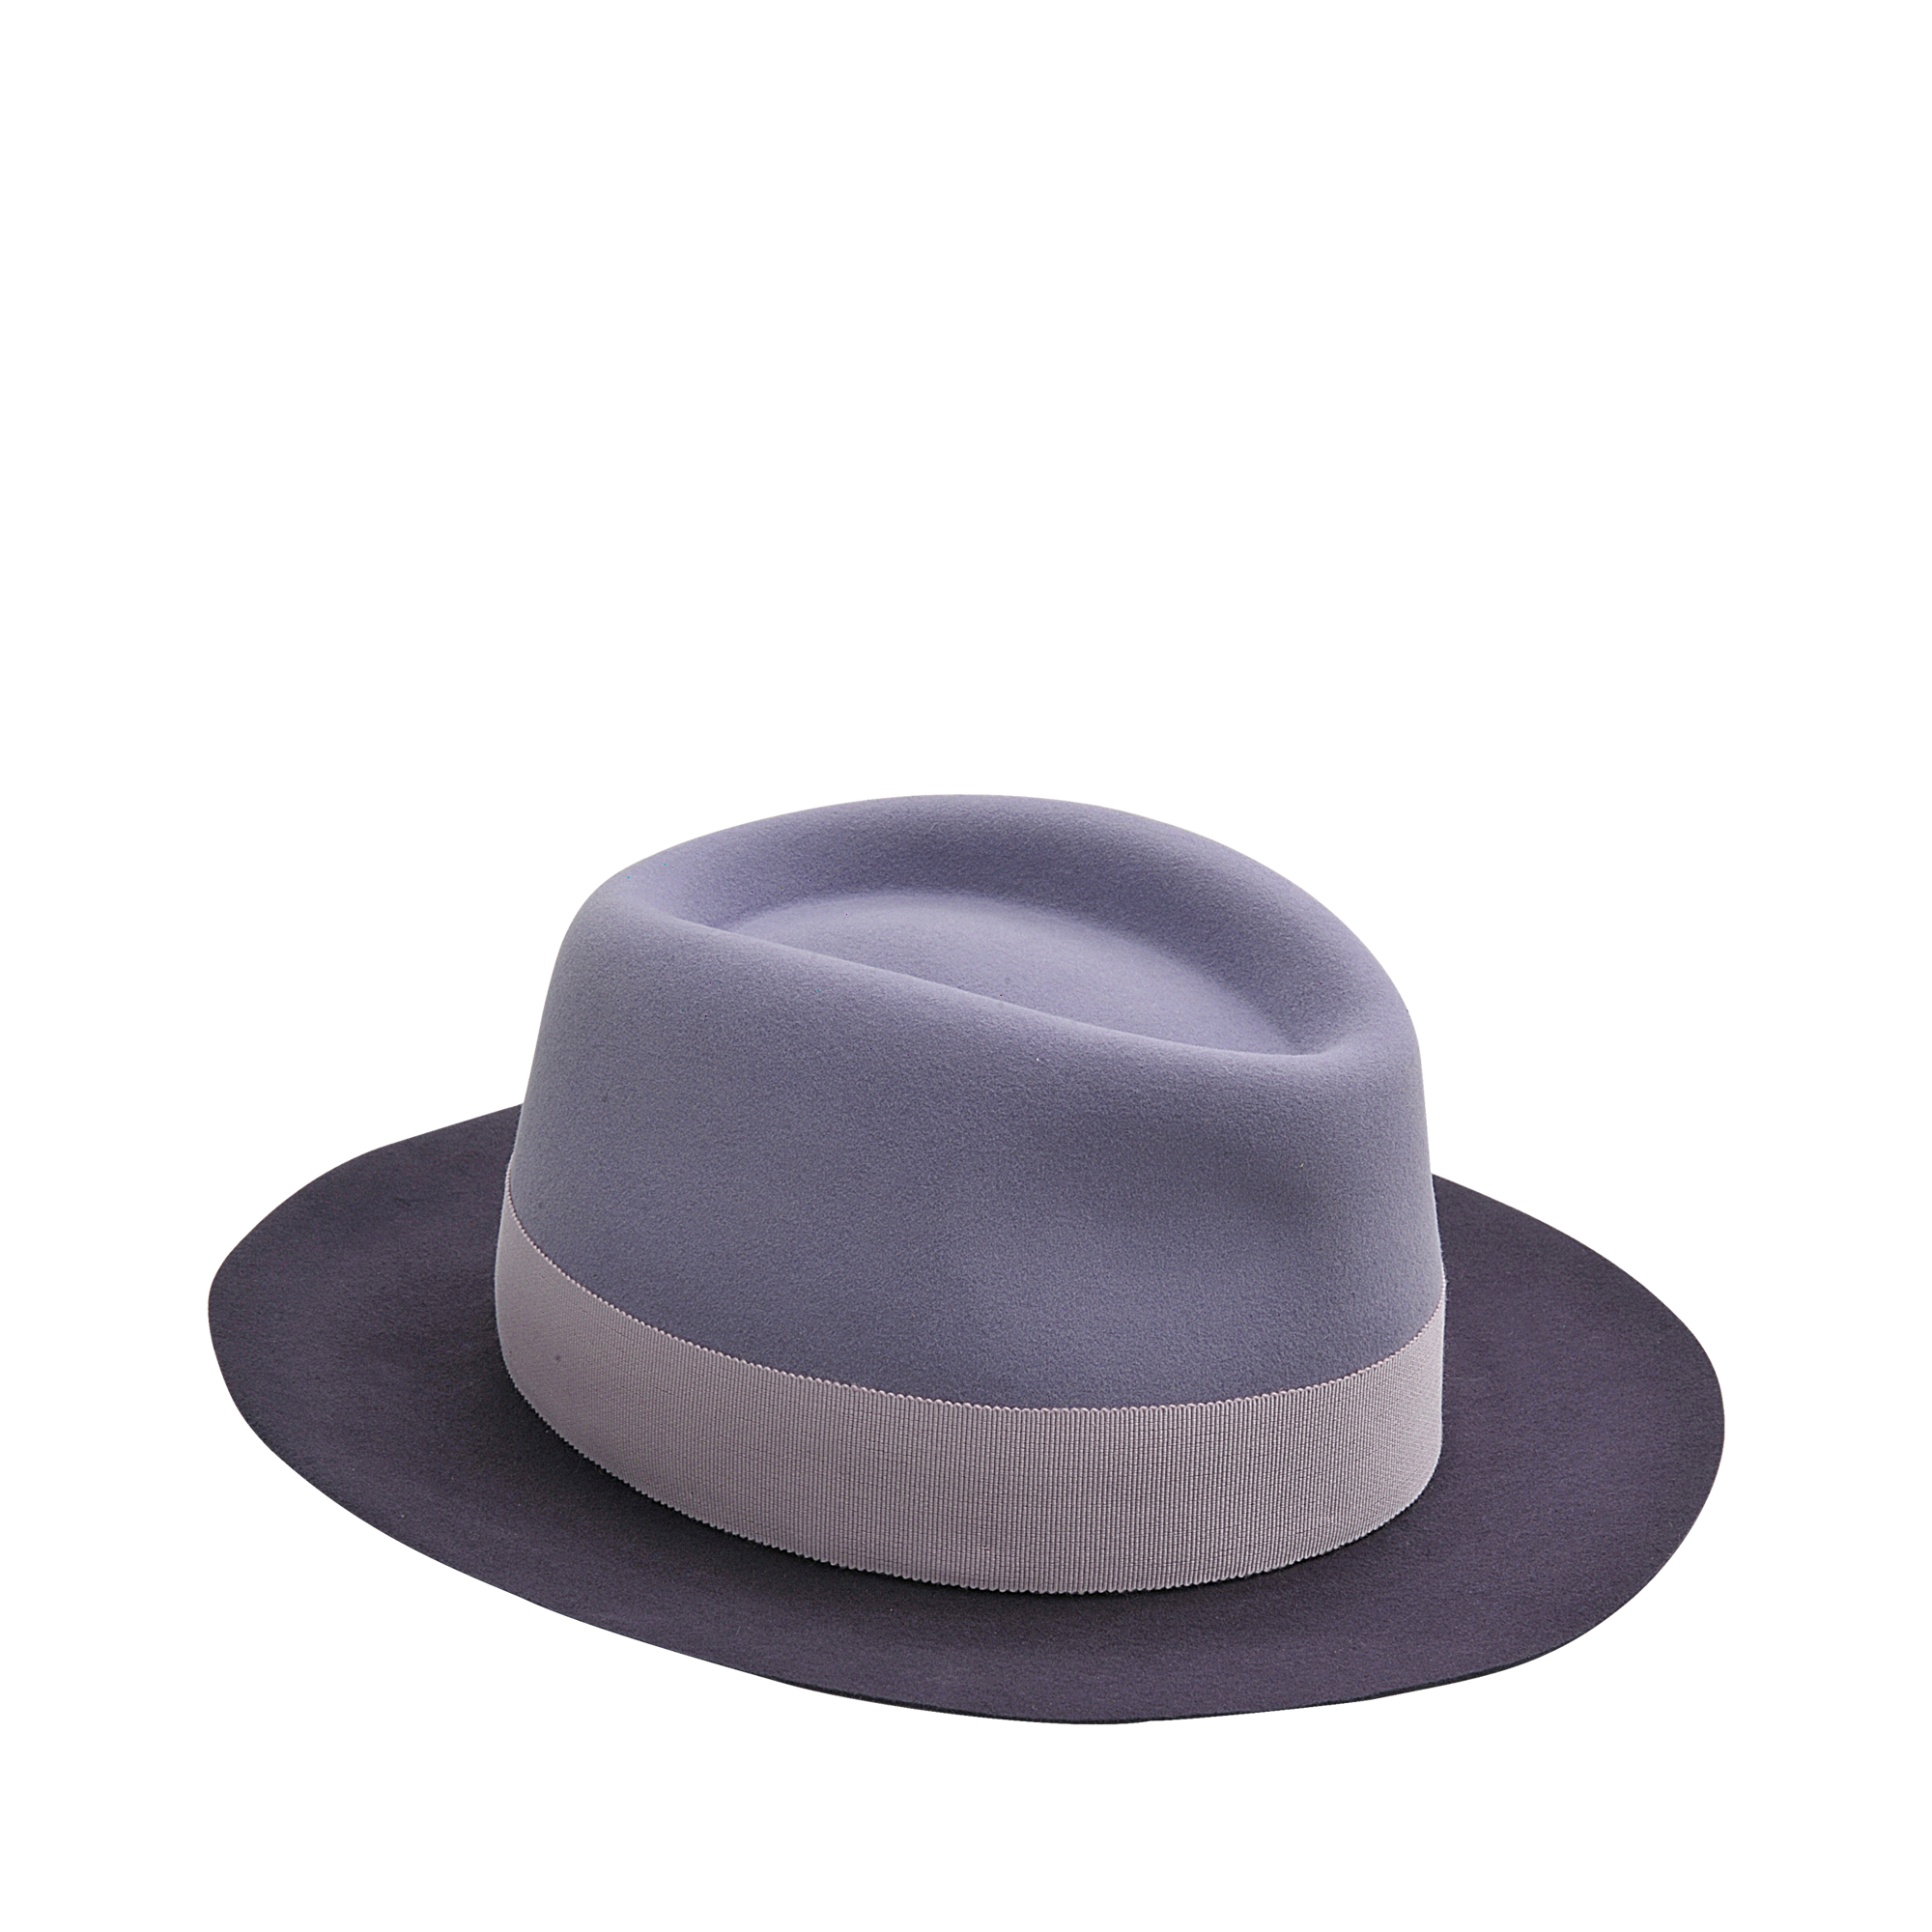 Maison michel hat andr in felt in purple lyst for Maison michel